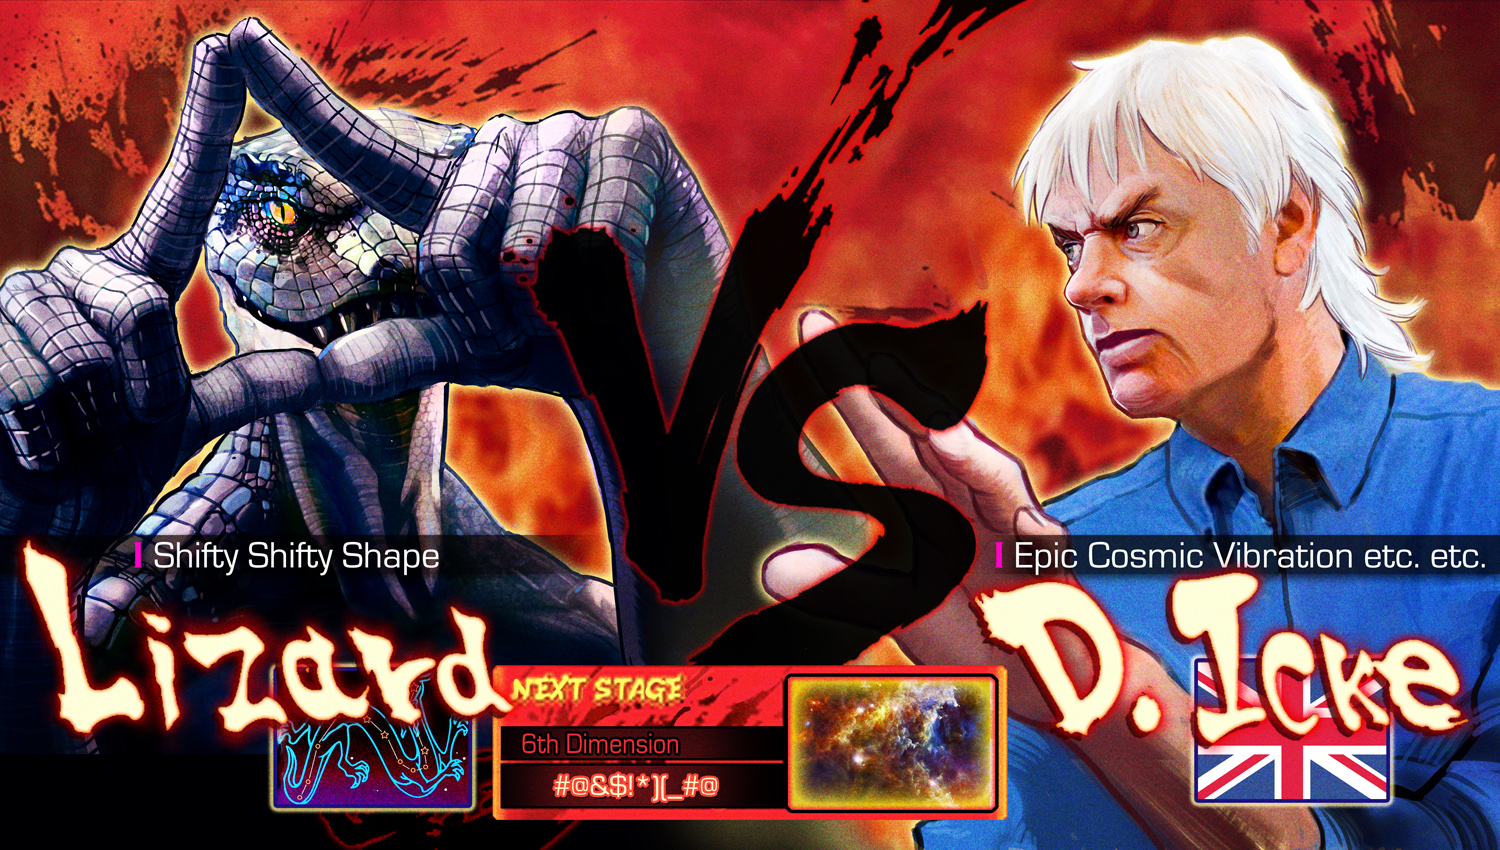 David Icke VS Lizard by Pazero